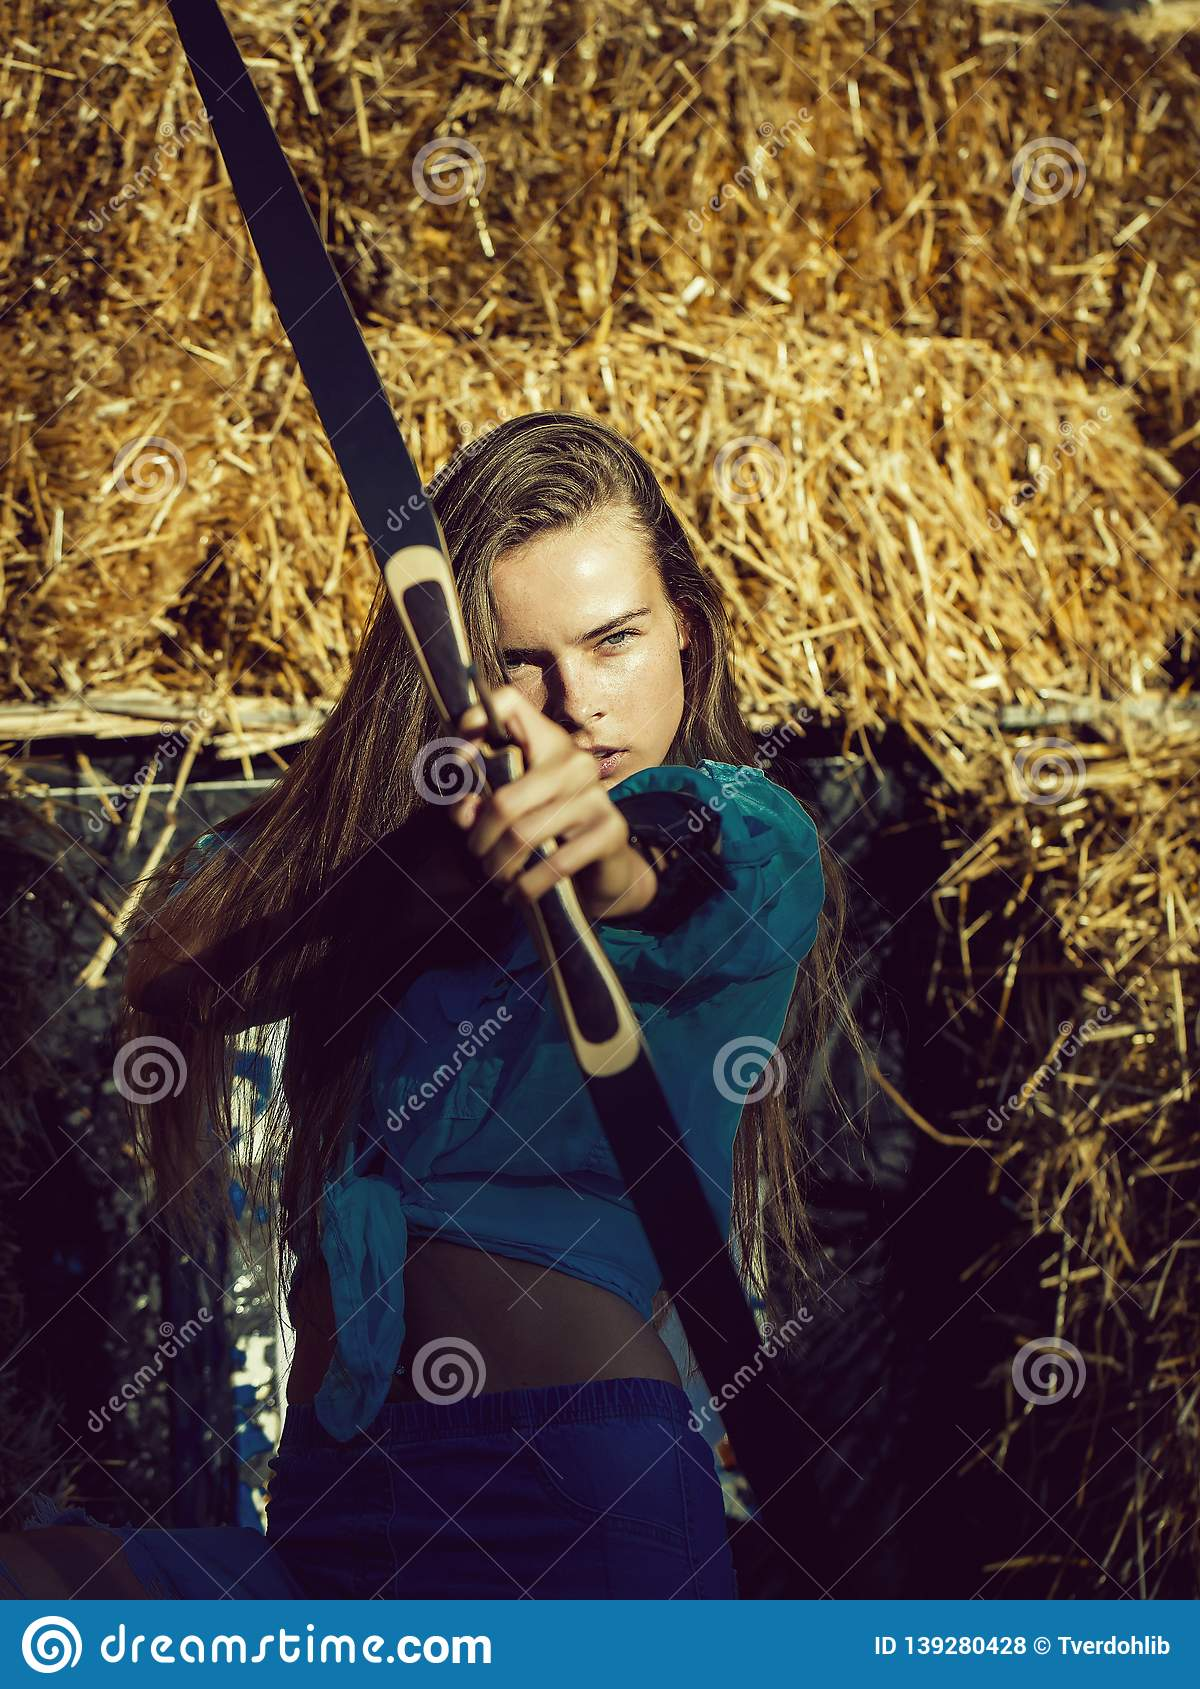 2ead88b2d59bd Woman, archer or hunter, with long hair shooting with bow and arrow on  sunny day at archery target on hay bales. Concentrate, accuracy, ambition